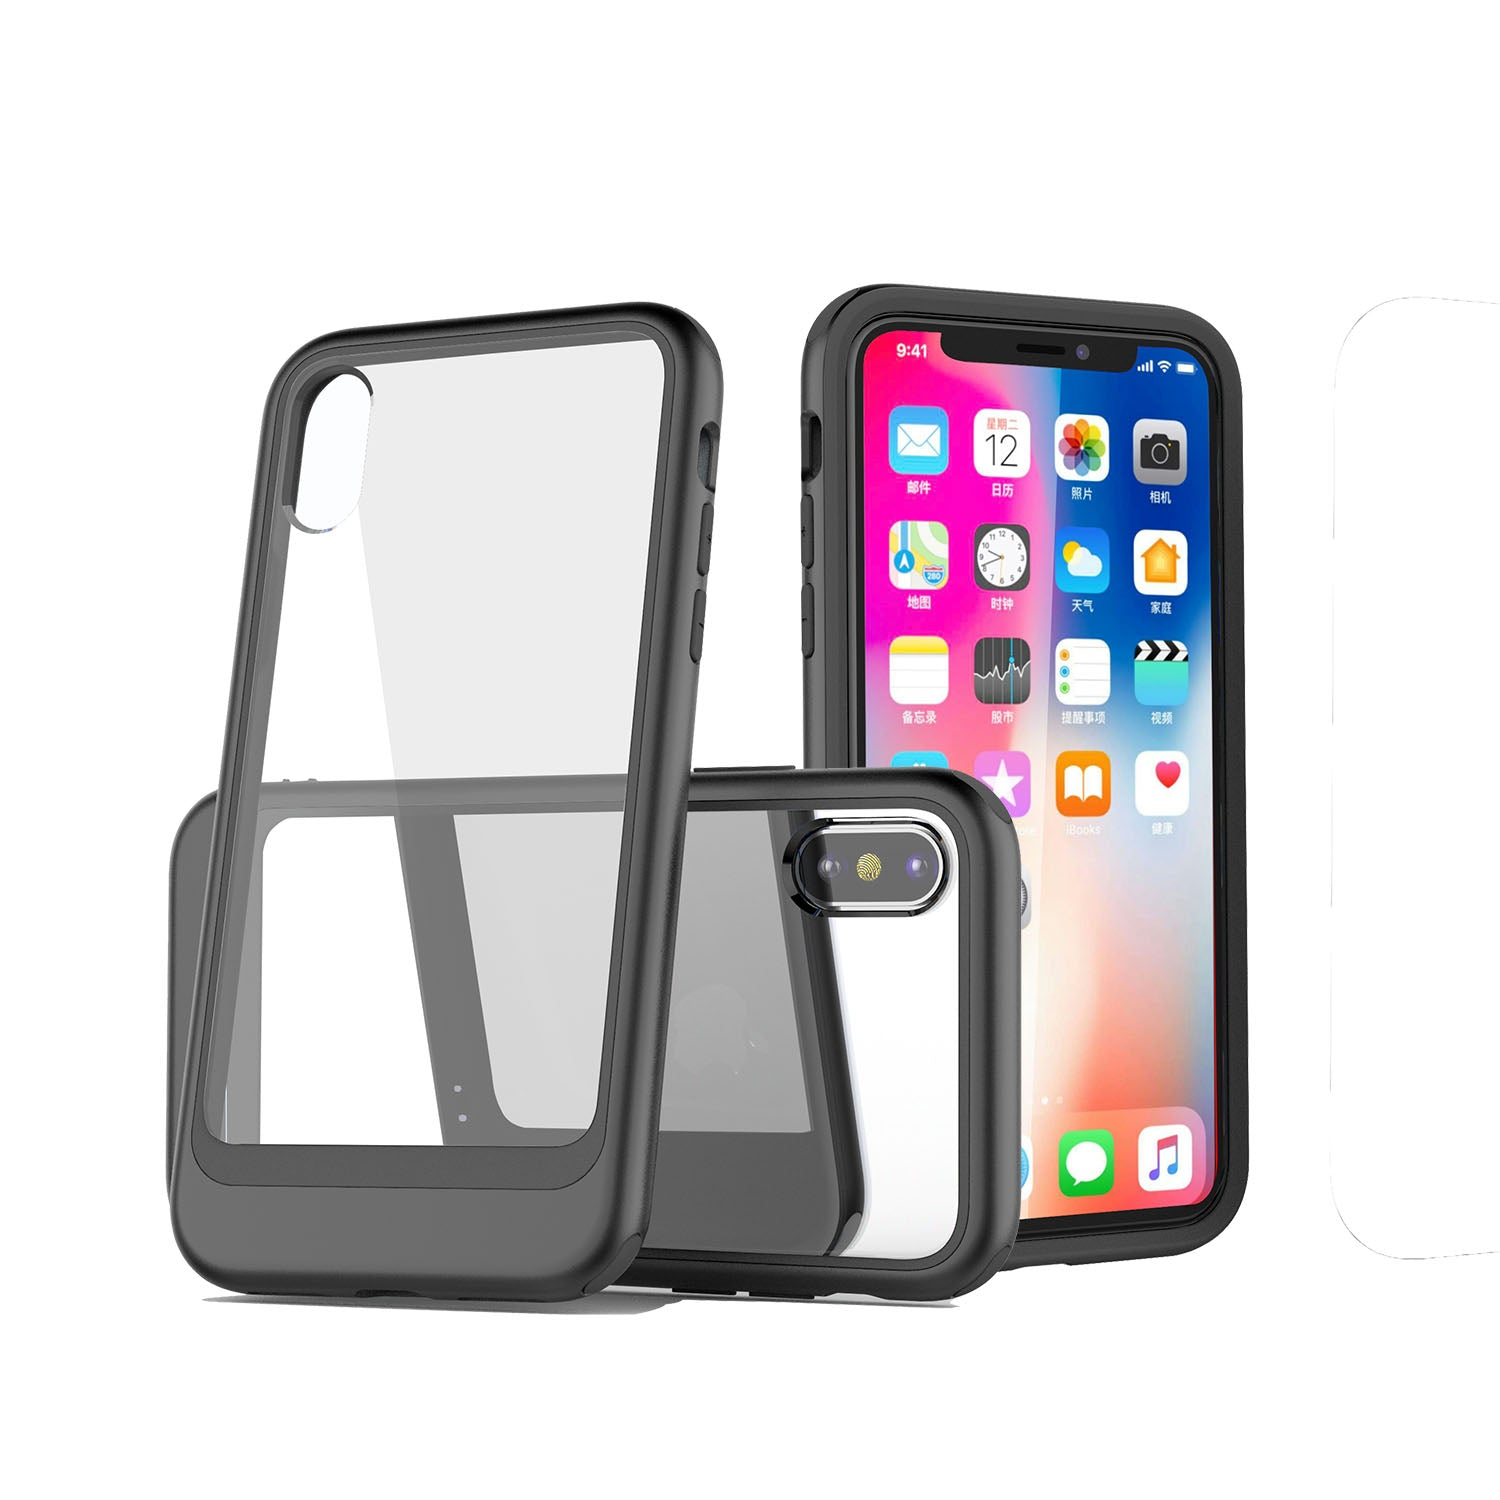 Fashion transparent PC back with colourful bumper slim iPhone XS Case 5.8""